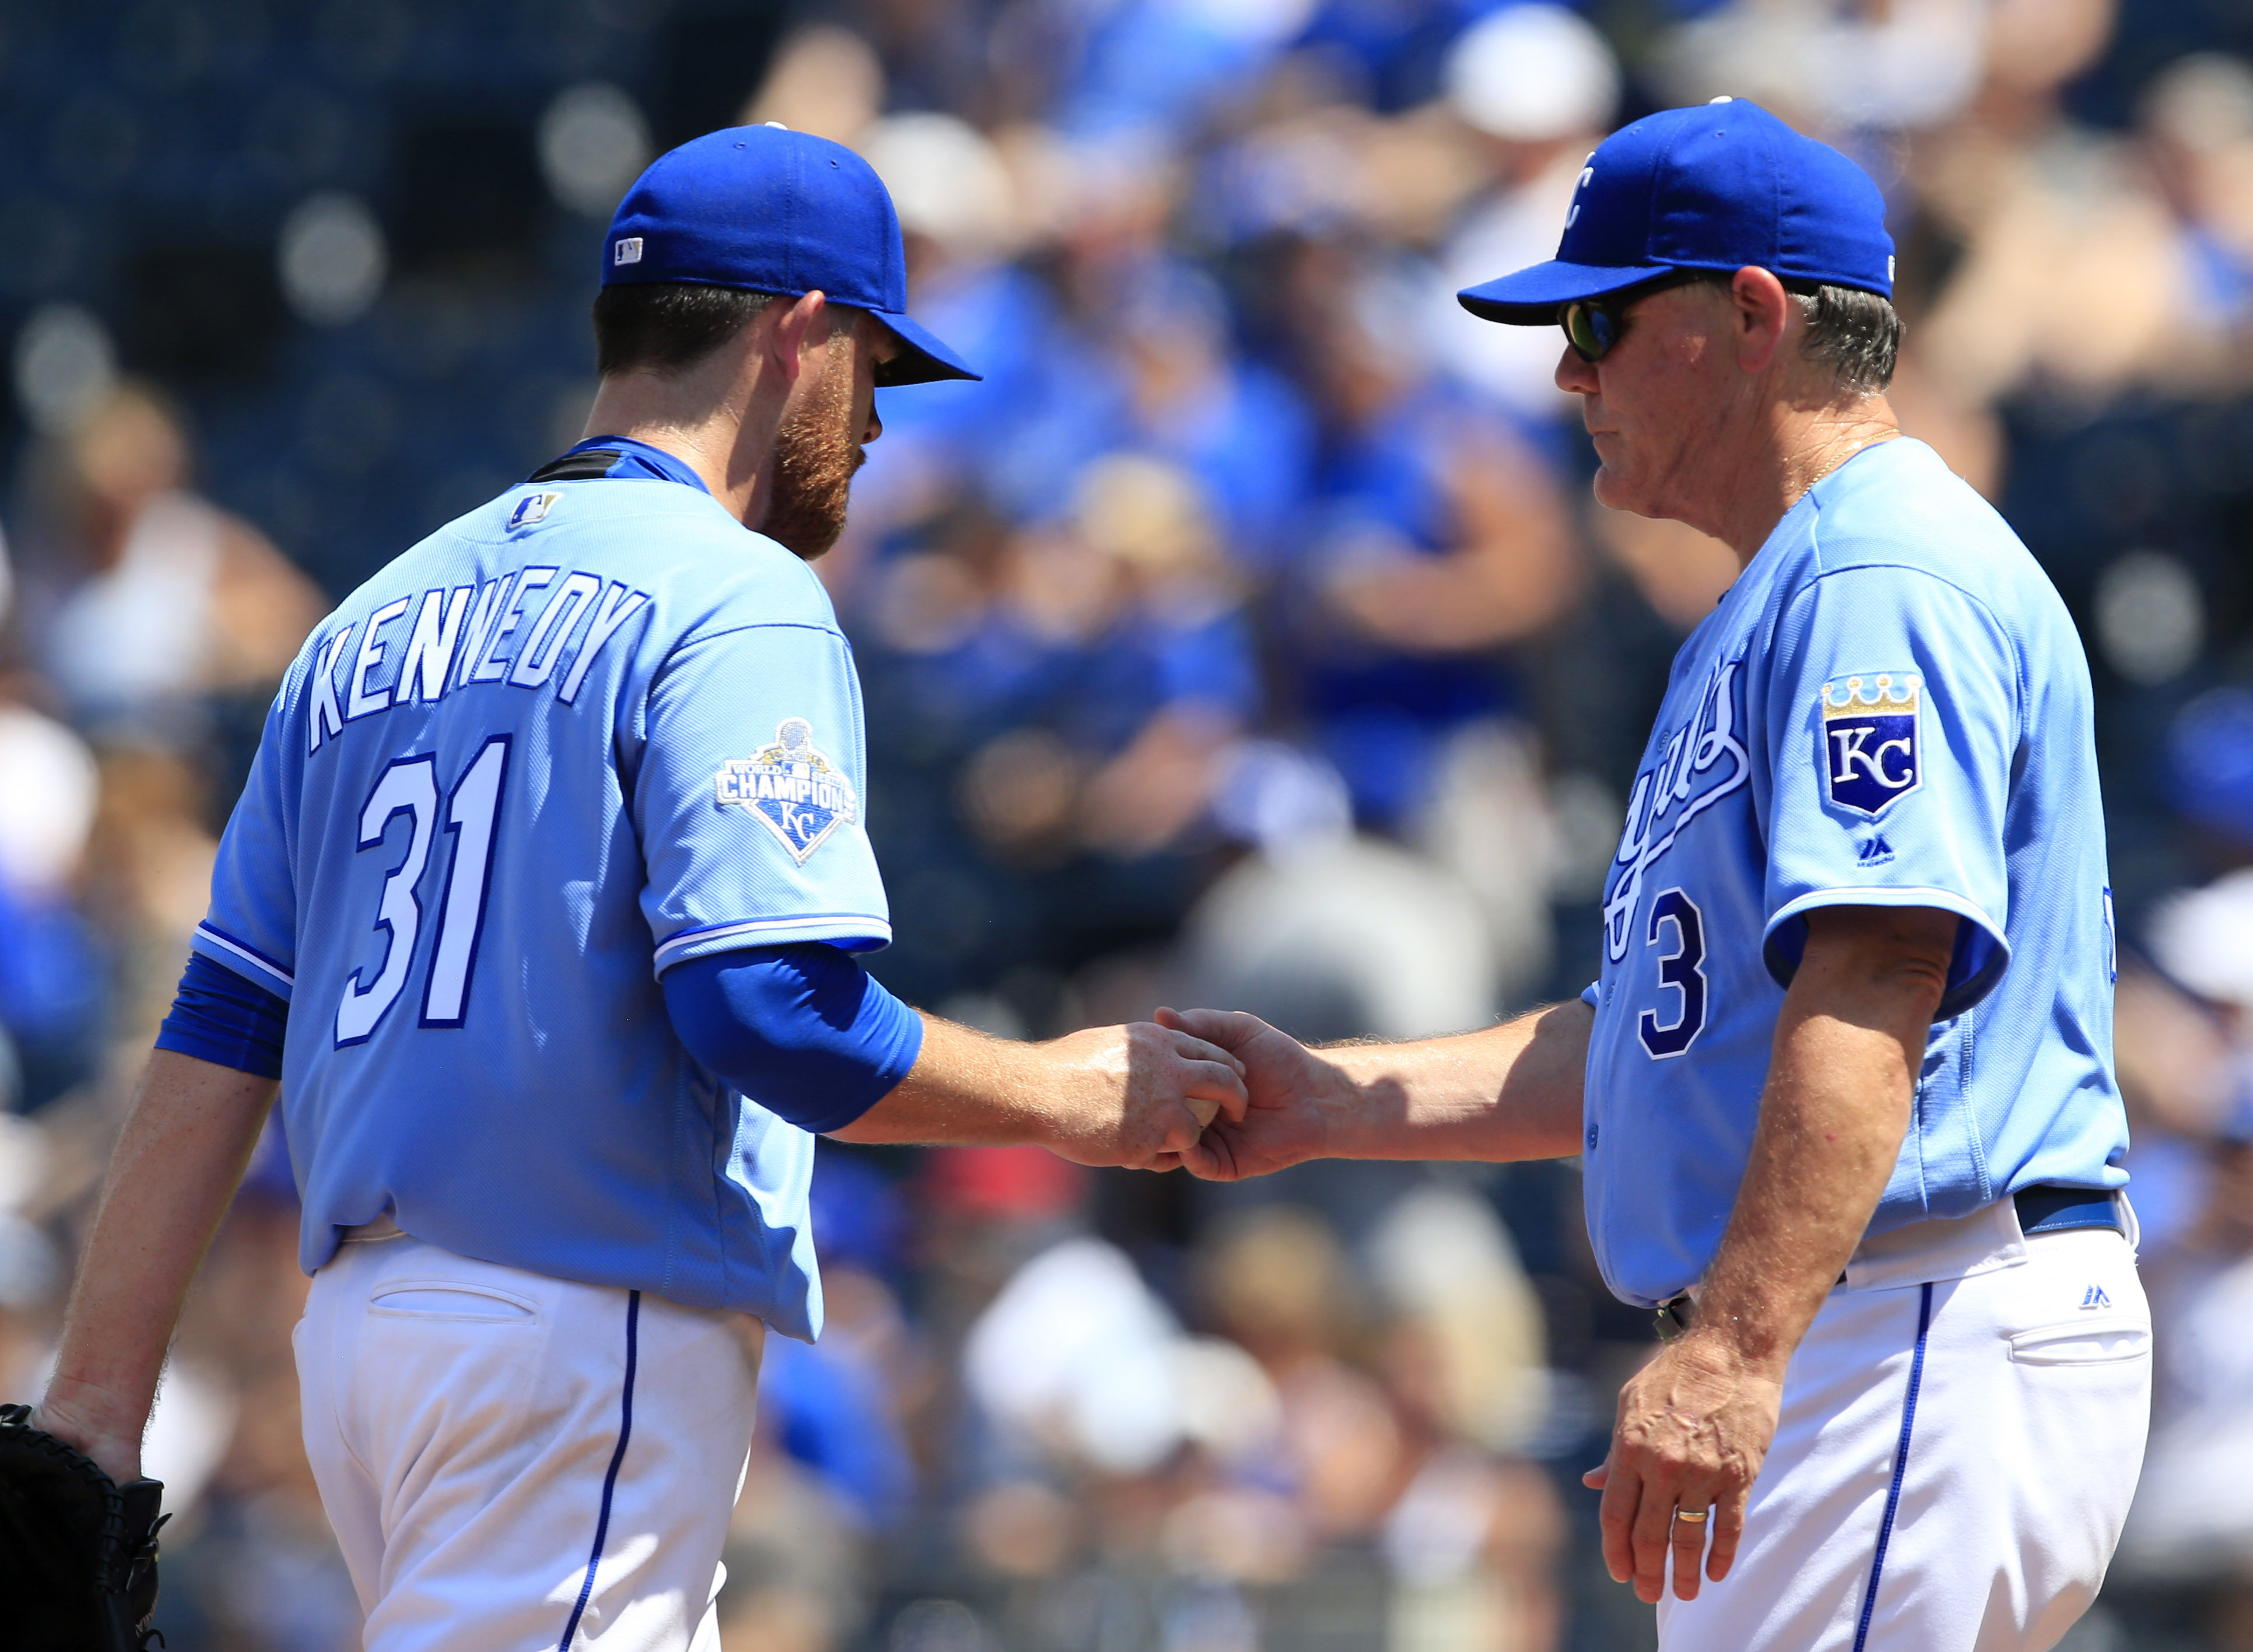 Kansas City Royals manager Ned Yost (3) takes the ball from starting pitcher Ian Kennedy (31) during the fifth inning of a baseball game against the Cleveland Indians at Kauffman Stadium in Kansas City, Mo., Wednesday, July 20, 2016. (AP Photo/Orlin Wagne